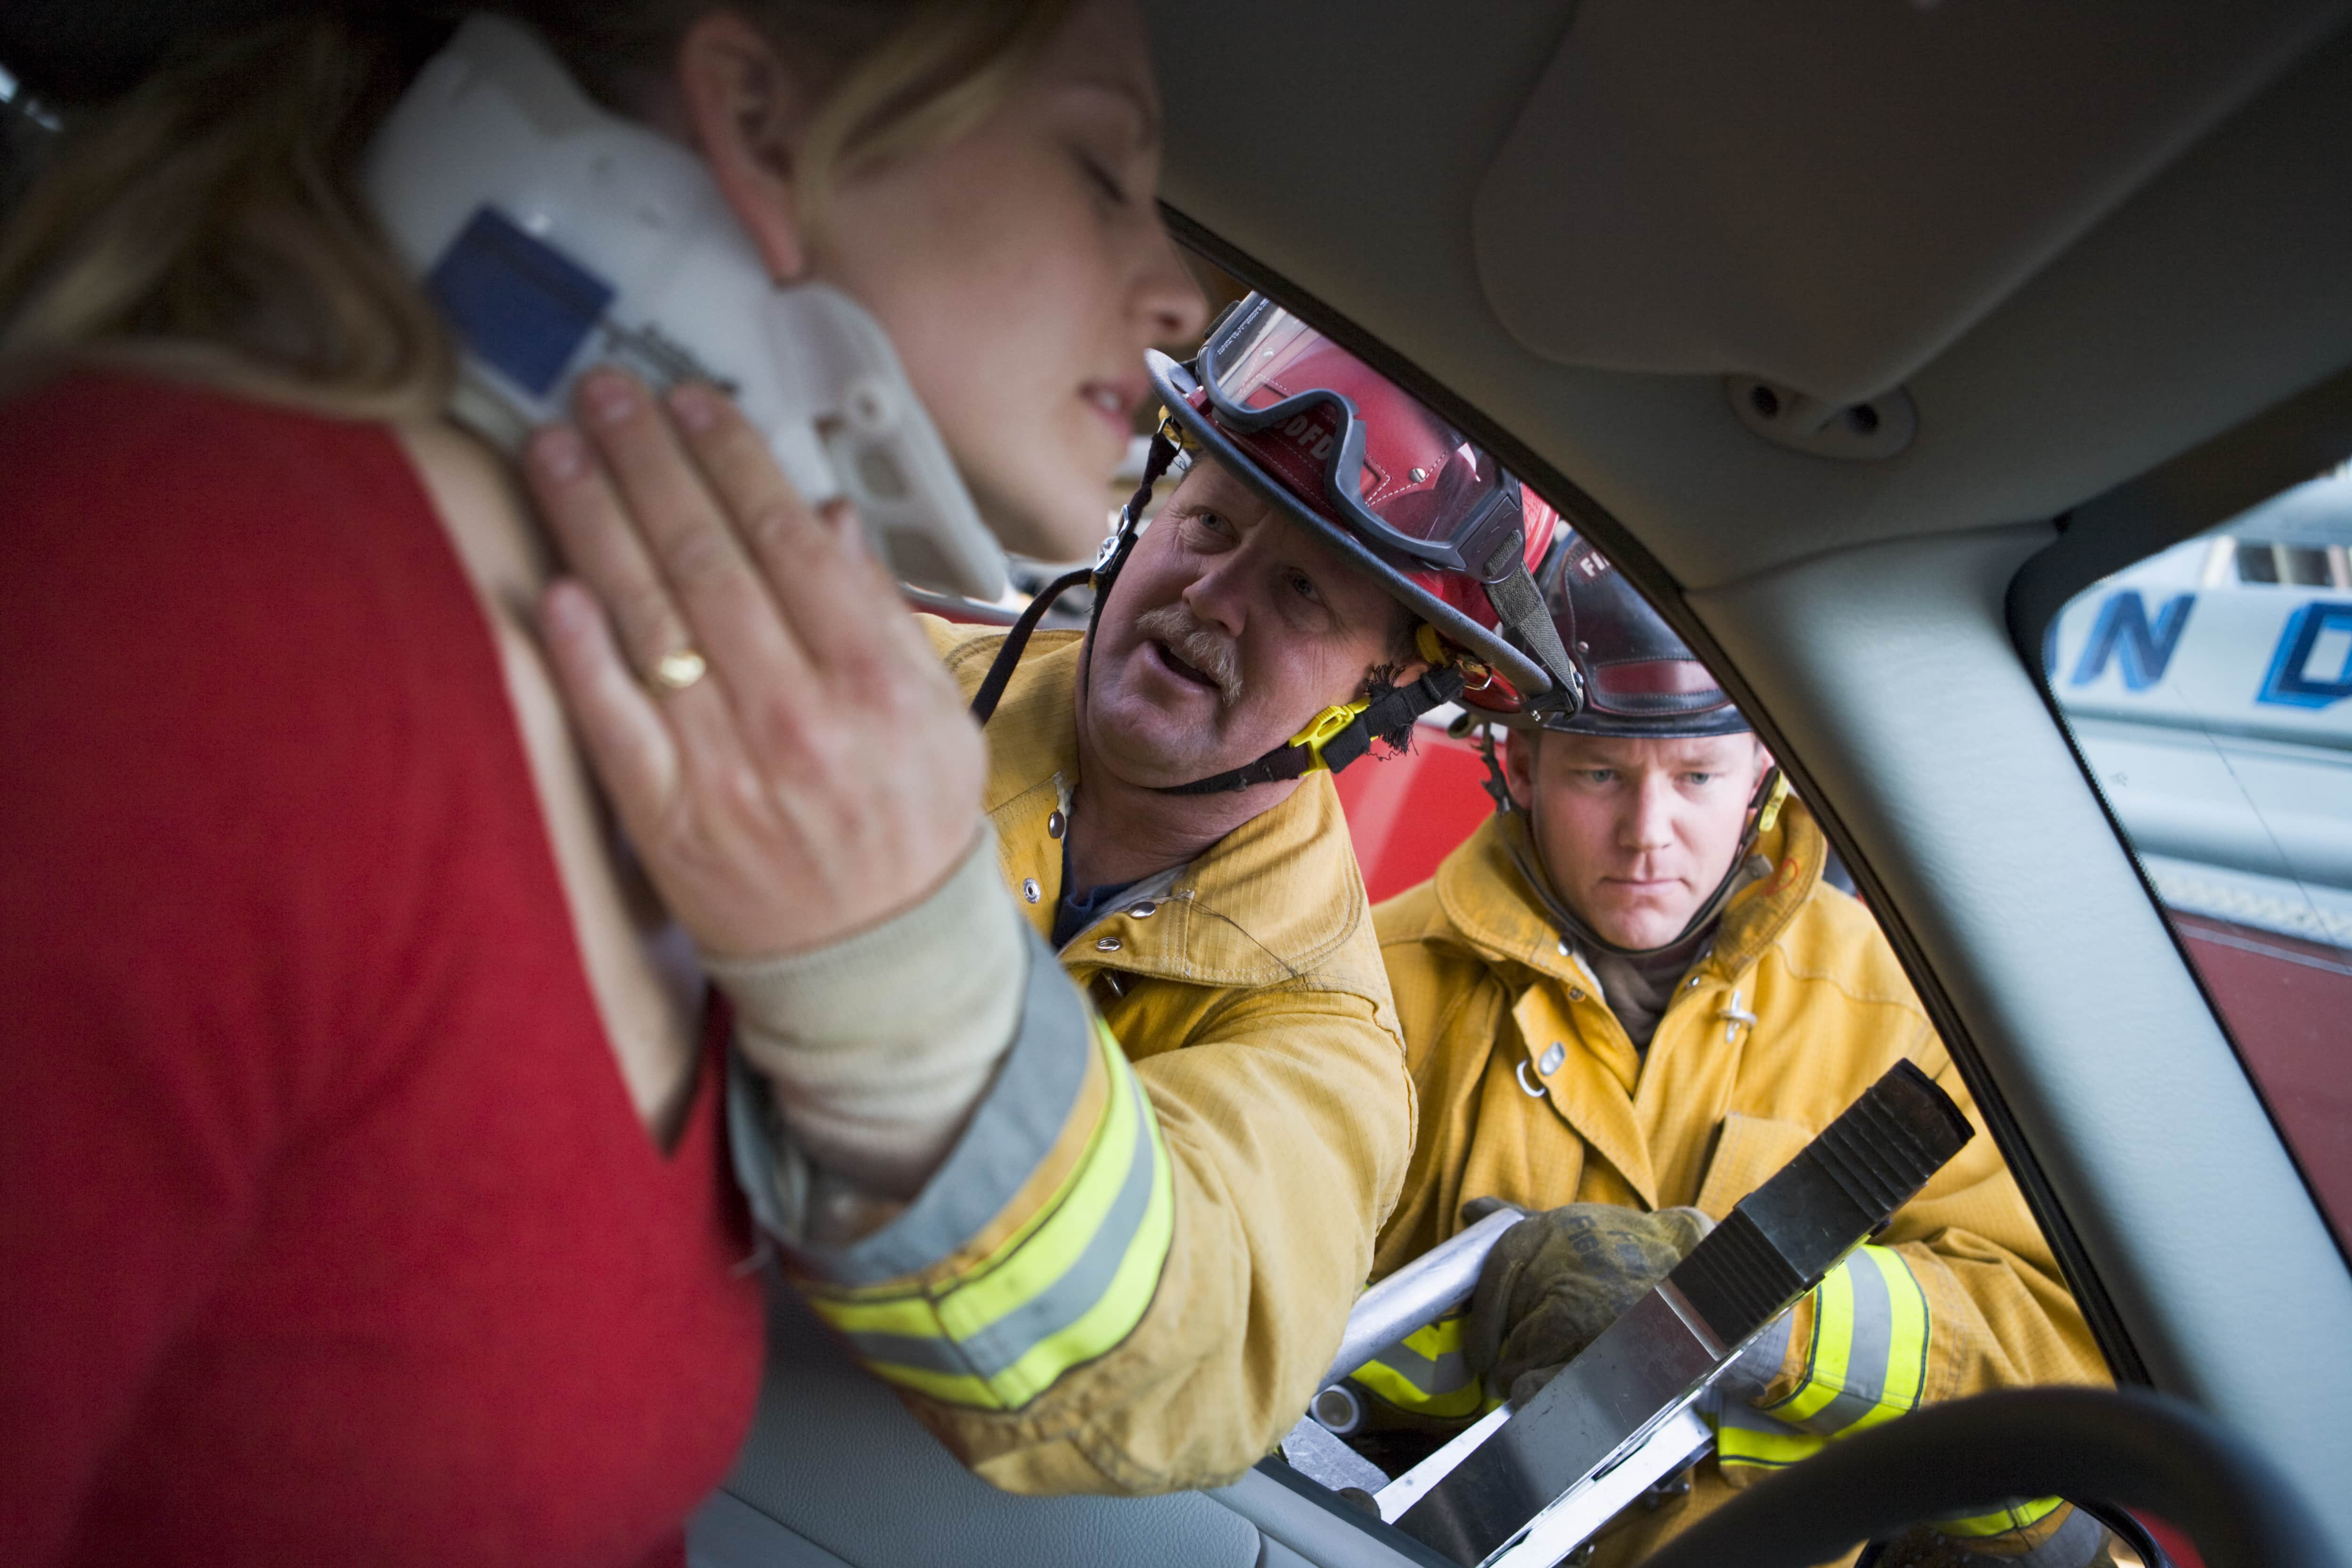 Personal Injury Lawyers in Indiana